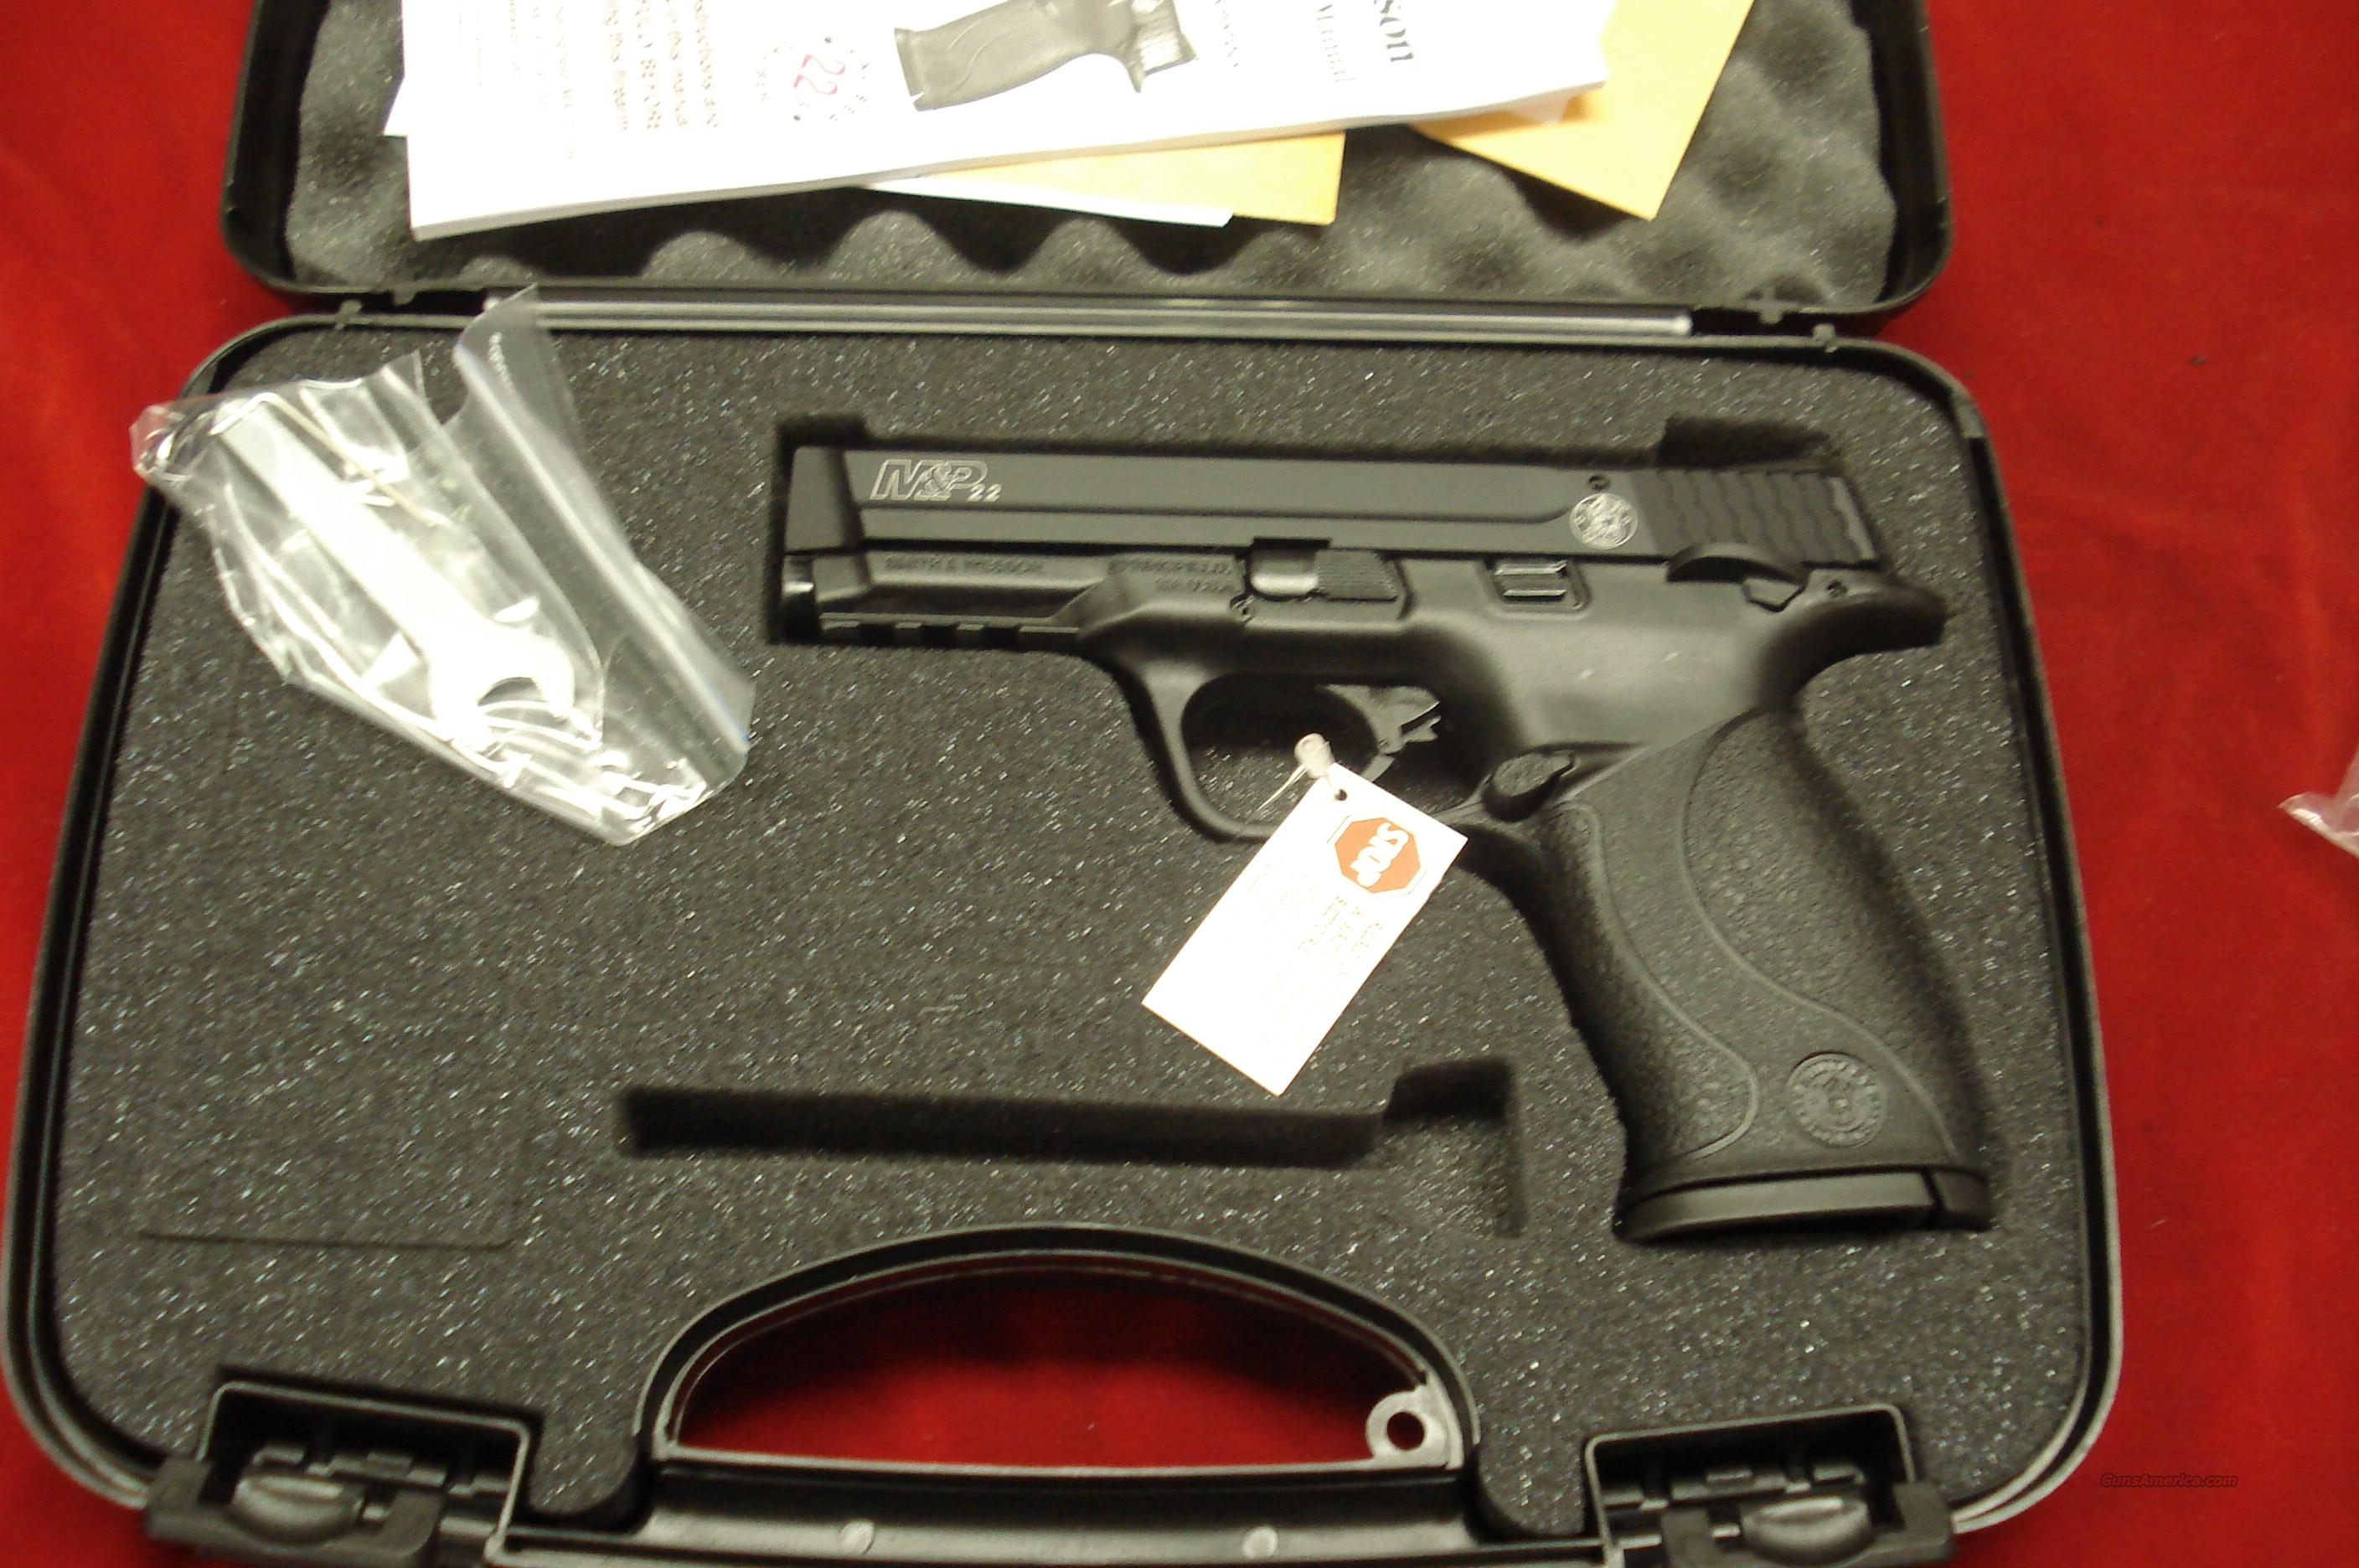 SMITH AND WESSON M&P22 NEW  Guns > Pistols > Smith & Wesson Pistols - Autos > Polymer Frame